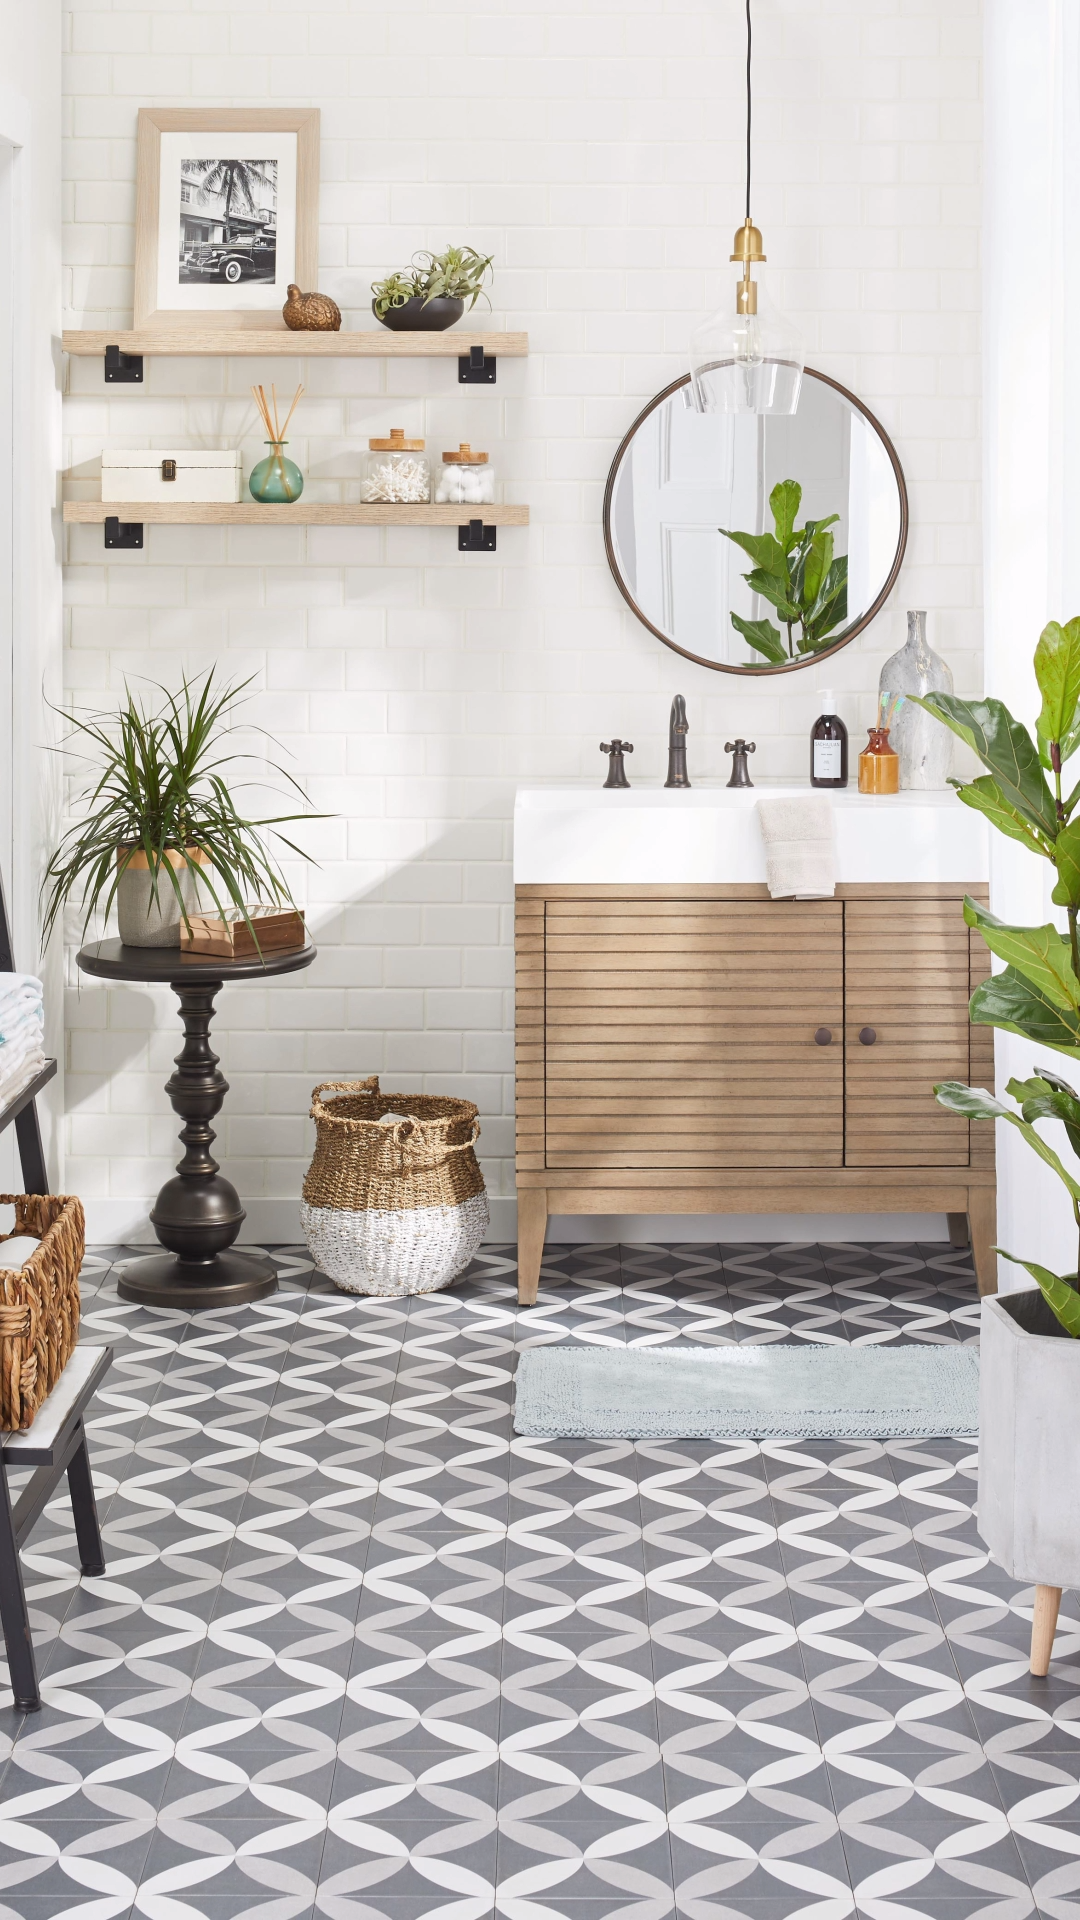 Photo of gorgeous bathroom decor from Overstock